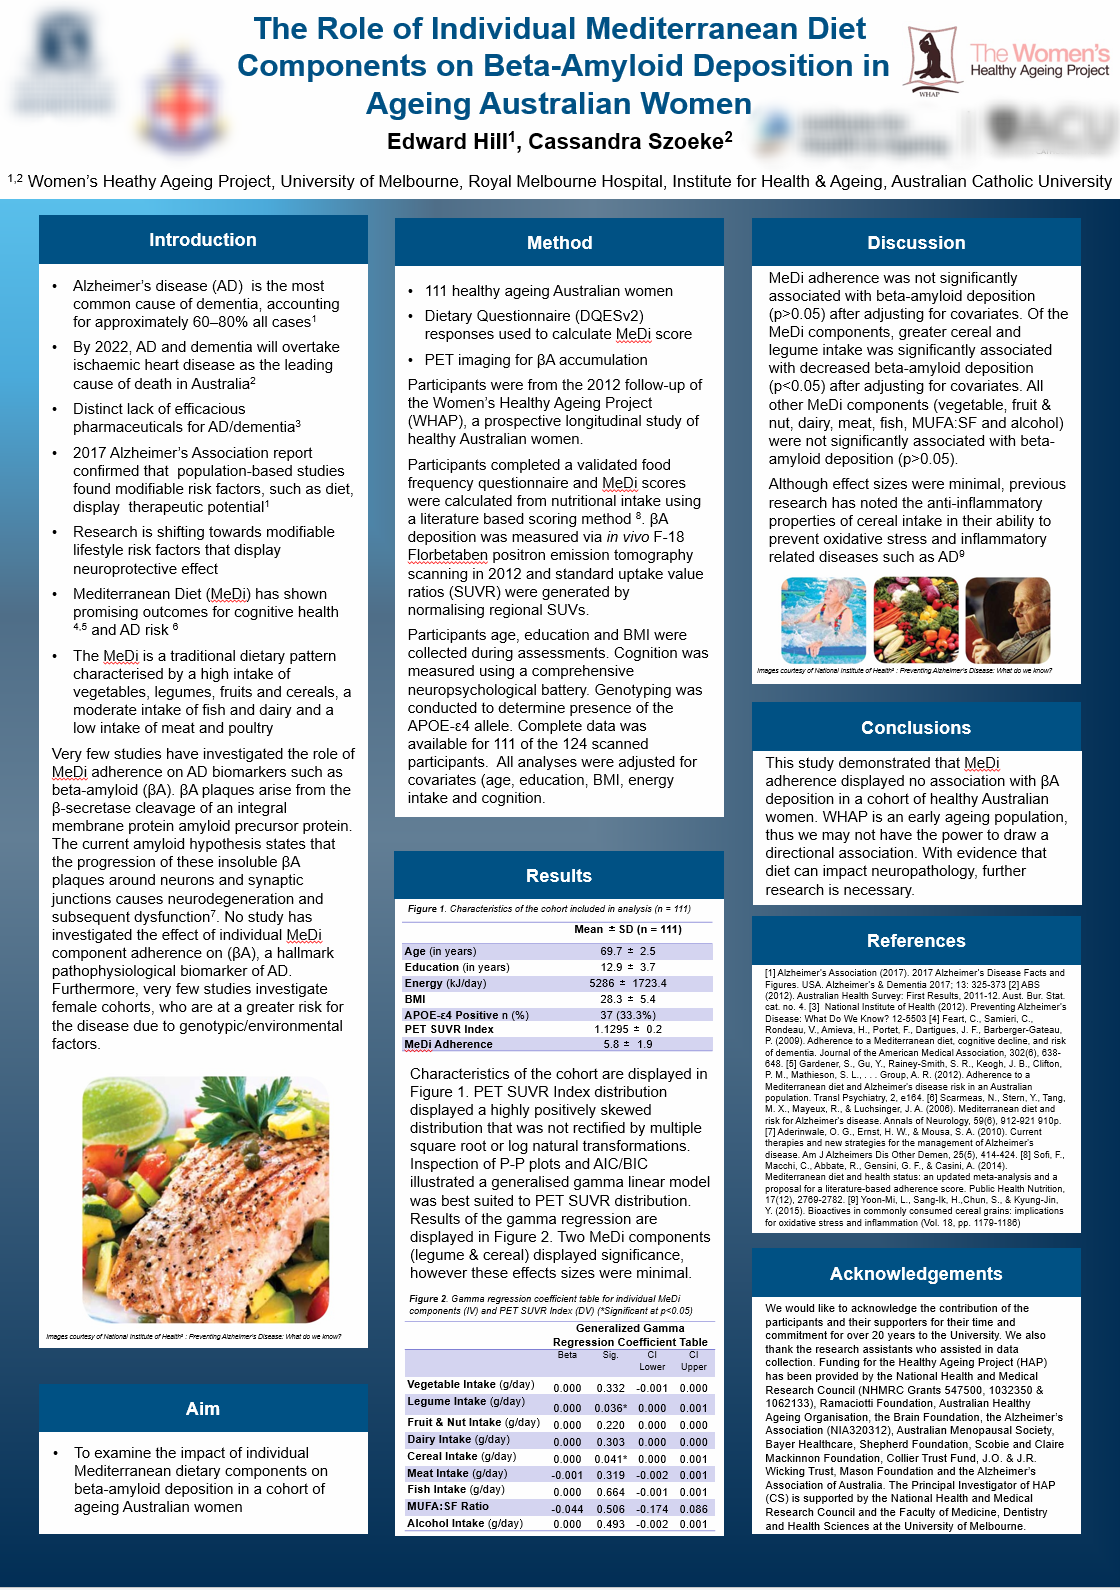 The Role of Individual Mediterranean DietComponents on Beta-Amyloid Deposition inAgeing Australian Women - Very few studies have investigated the role of MeDi adherence on AD biomarkers such as beta-amyloid (βA). The aim of this study was to examine the impact of individual Mediterranean dietary components on beta-amyloid deposition in a cohort of ageing Australian women.MeDi adherence was not significantly associated with beta-amyloid deposition after adjusting for covariates. Of the MeDi components, greater cereal and legume intake was significantly associated with decreased beta-amyloid deposition after adjusting for covariates. All other MeDi components (vegetable, fruit & nut, dairy, meat, fish, MUFA:SF and alcohol) were not significantly associated with beta-amyloid deposition.Citation: Hill, E., et al. (2017).The role of individual Mediterranean diet components on beta-amyloid deposition in ageing Australian women. Poster presented at 13th International Conference on Alzheimer's & Parkinson's Diseases (AD/PD), Vienna, Austria, 29 March-2 April.